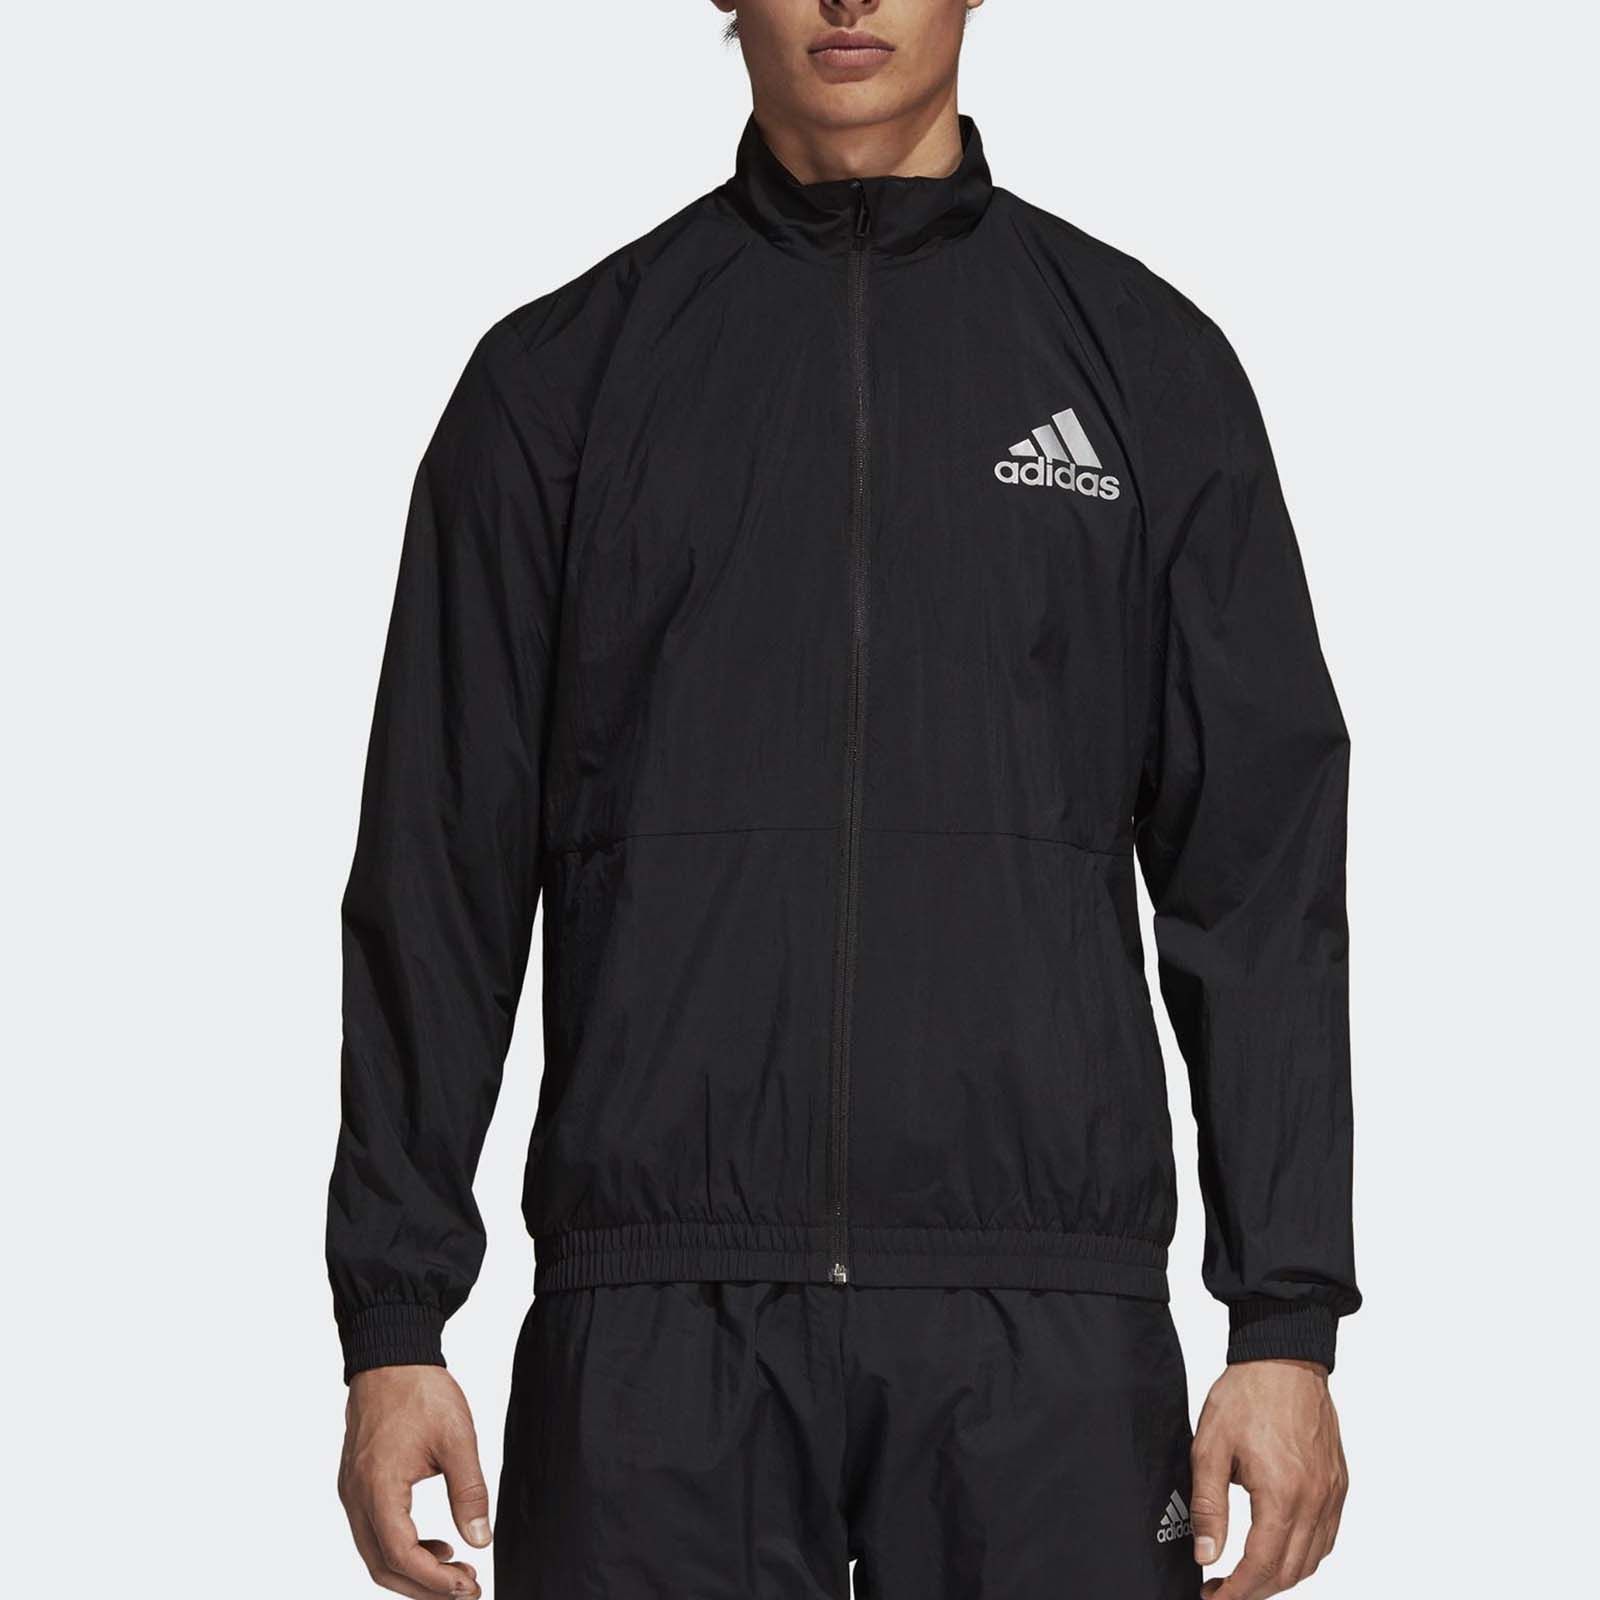 Details about adidas ID Wind Track Jacket Reflective Bomber Fleece Running Sports Black CY9880